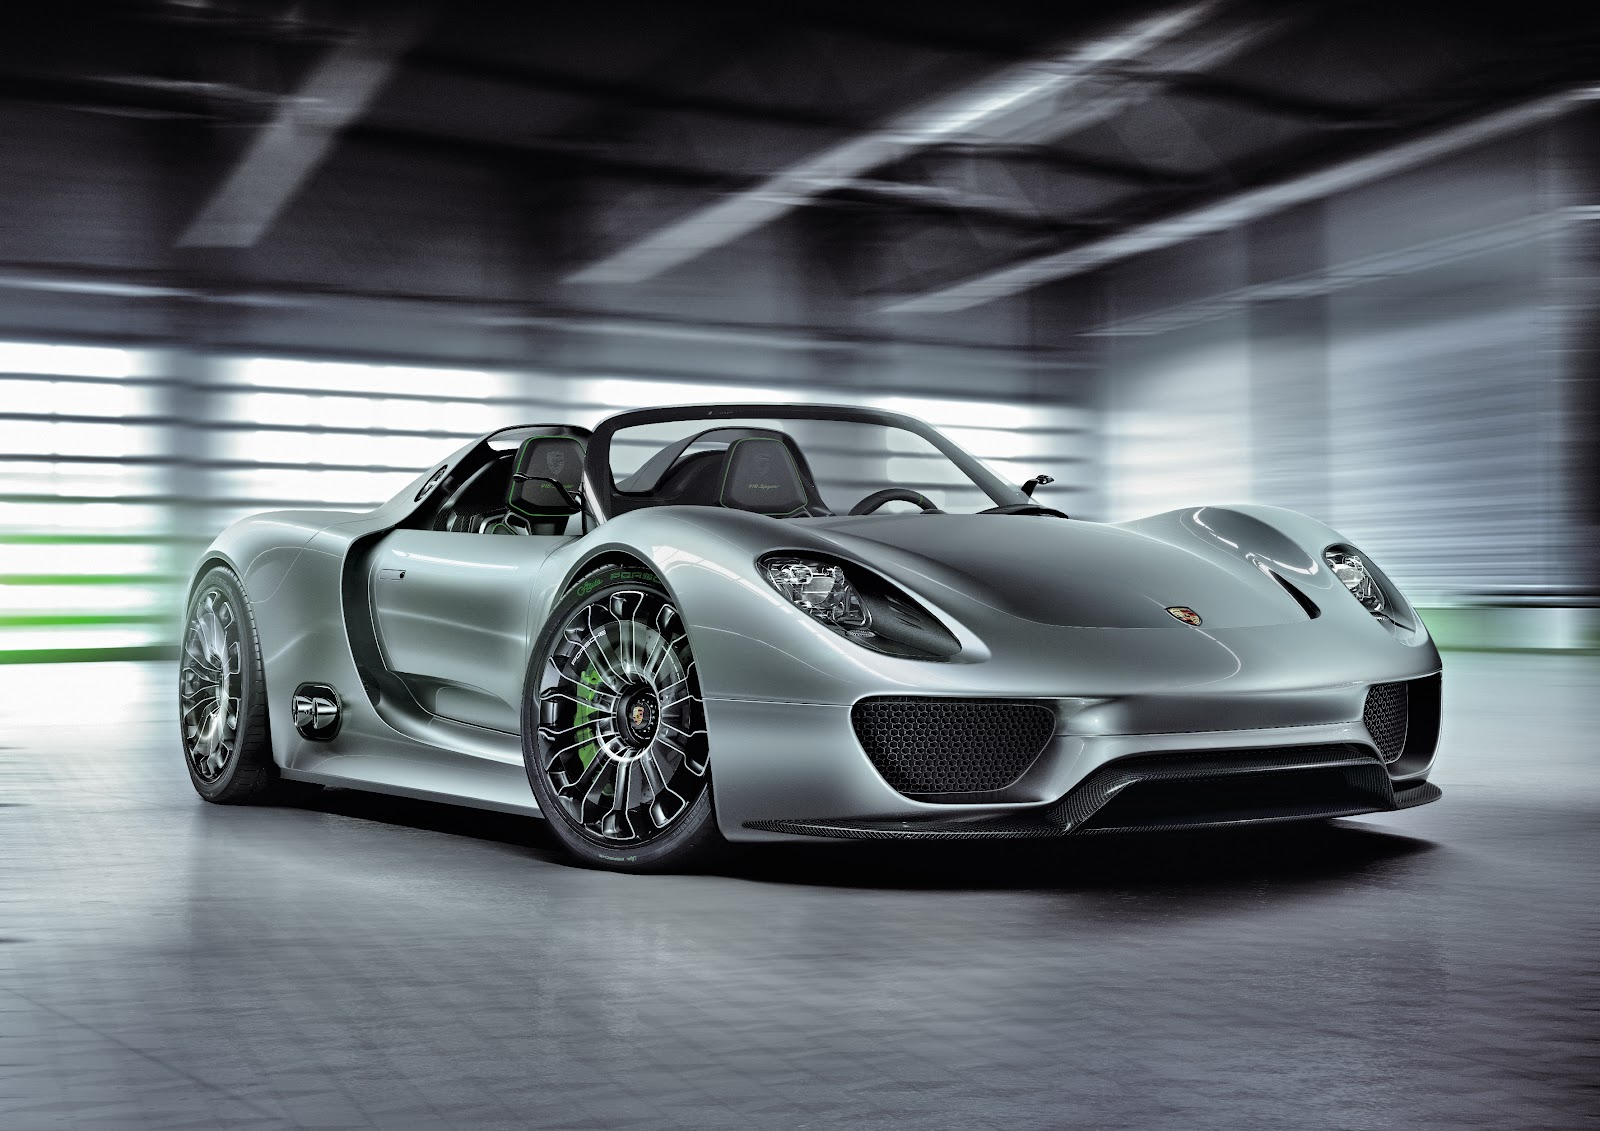 For Europe S Official Press Release Of The 918 Spyder Follow This Link